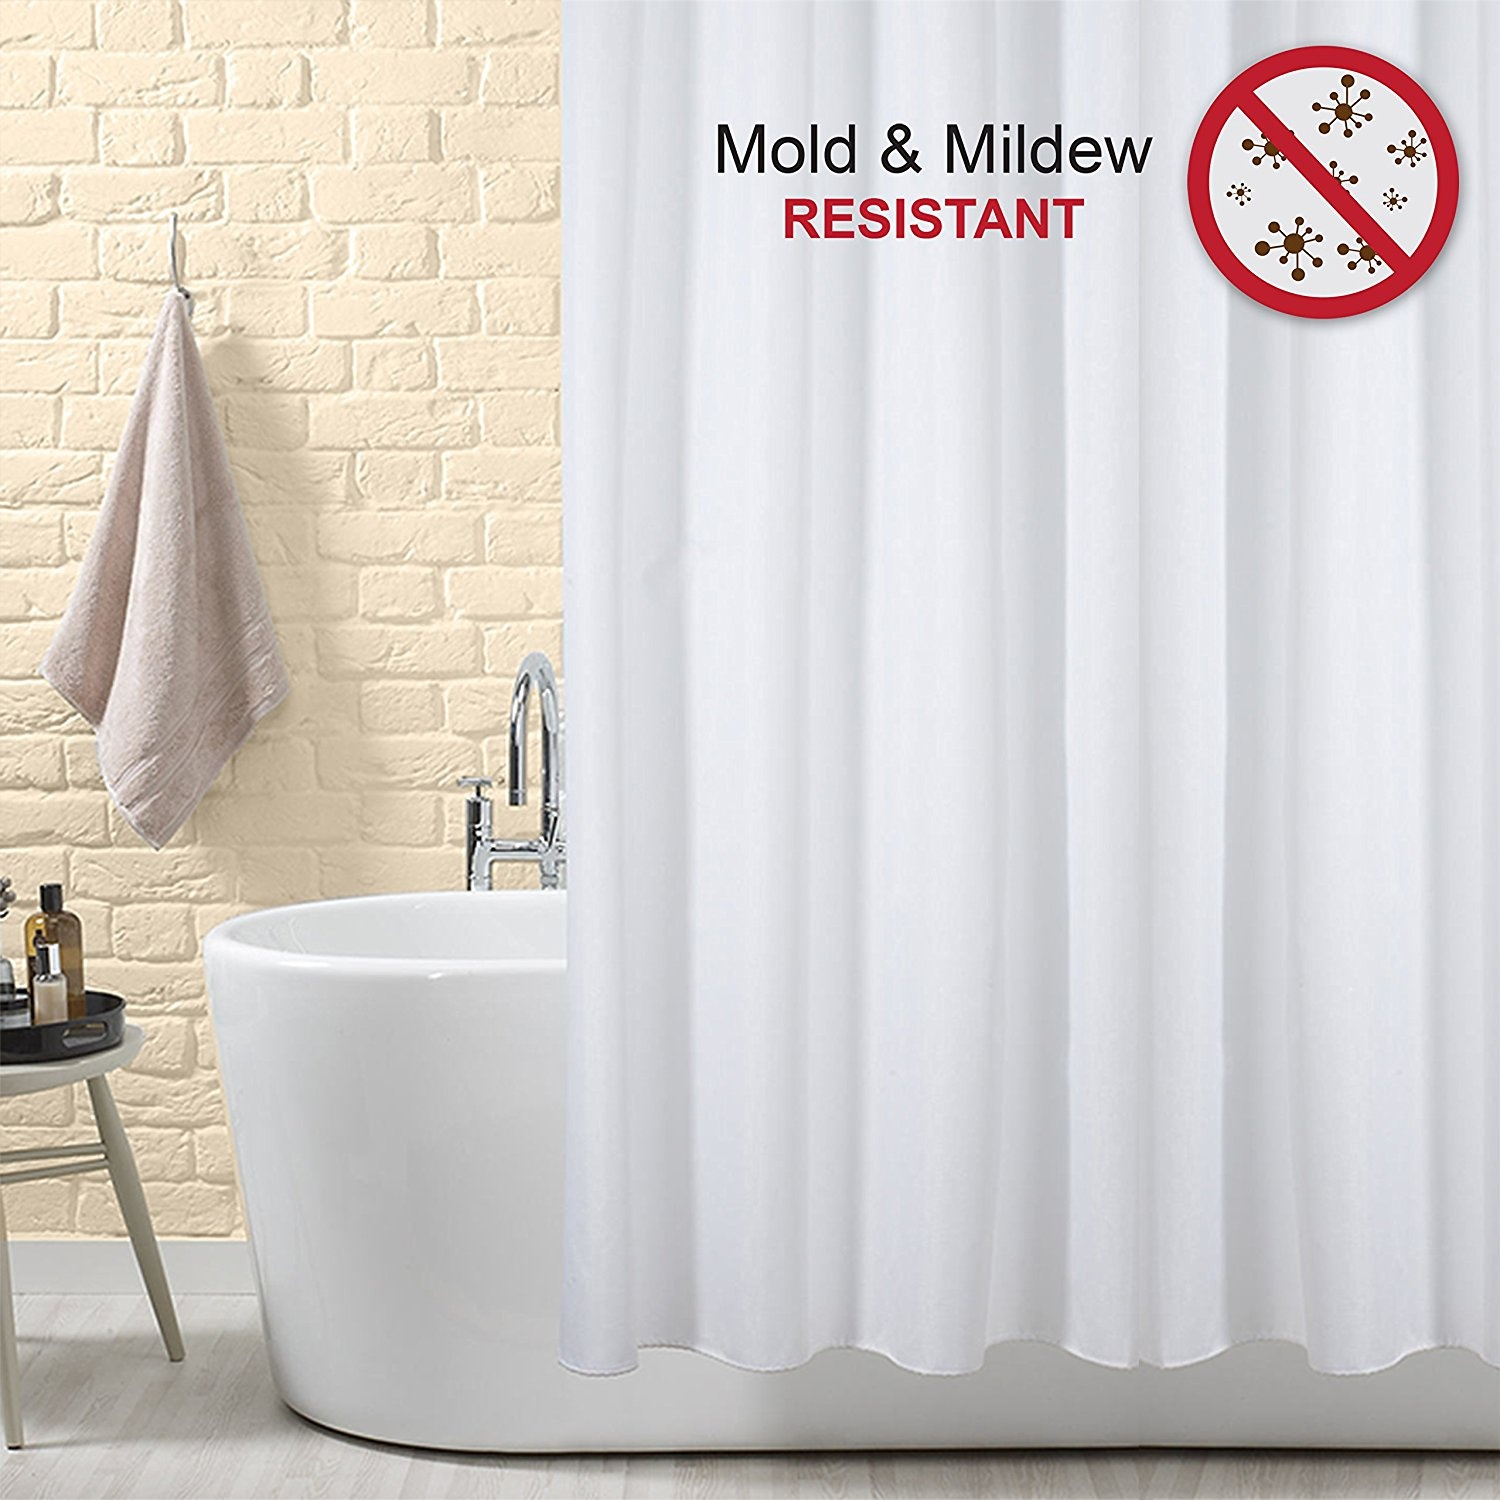 Shower Curtain 100 Polyester Fabric With Mould And Mildew Resistant